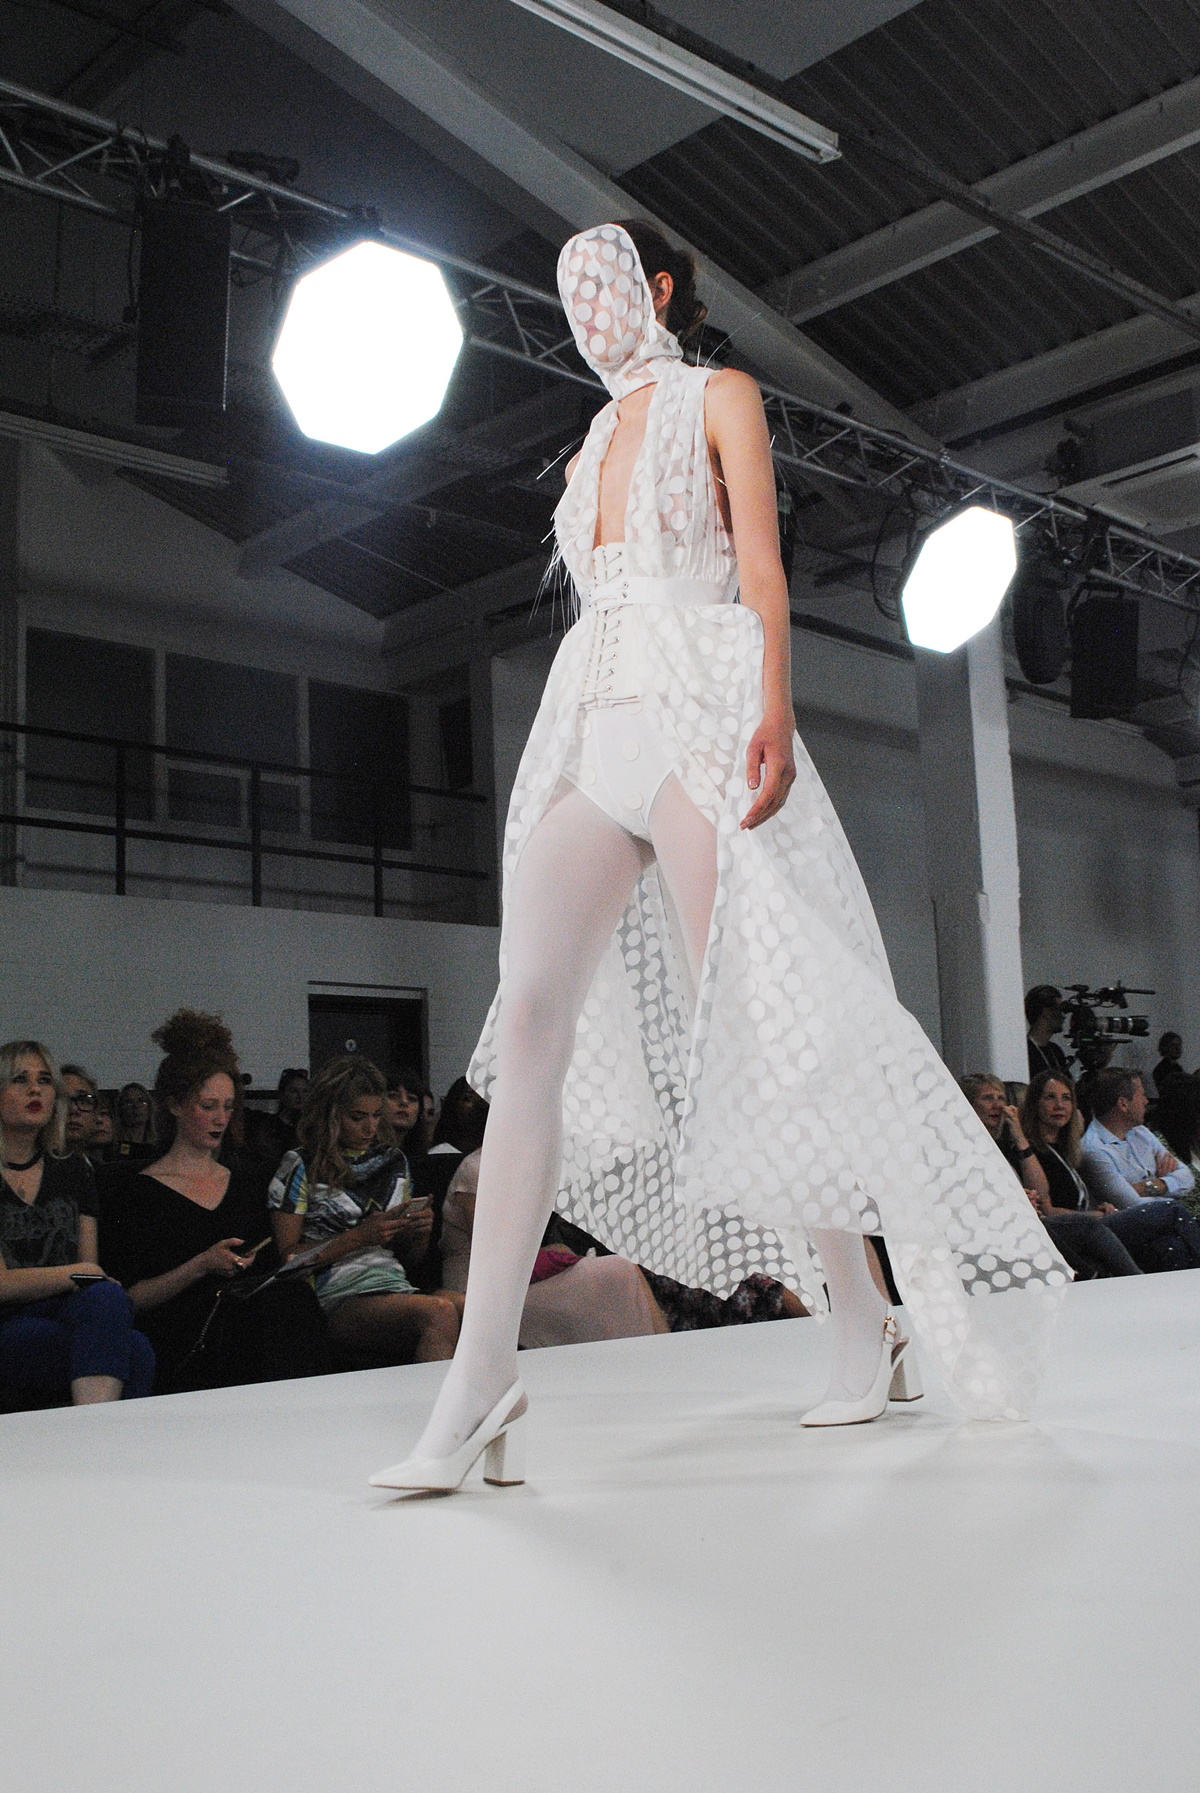 Sarah Louise Francis fashion show at GFW17, graduate designer, highlights by THink Feel Discover